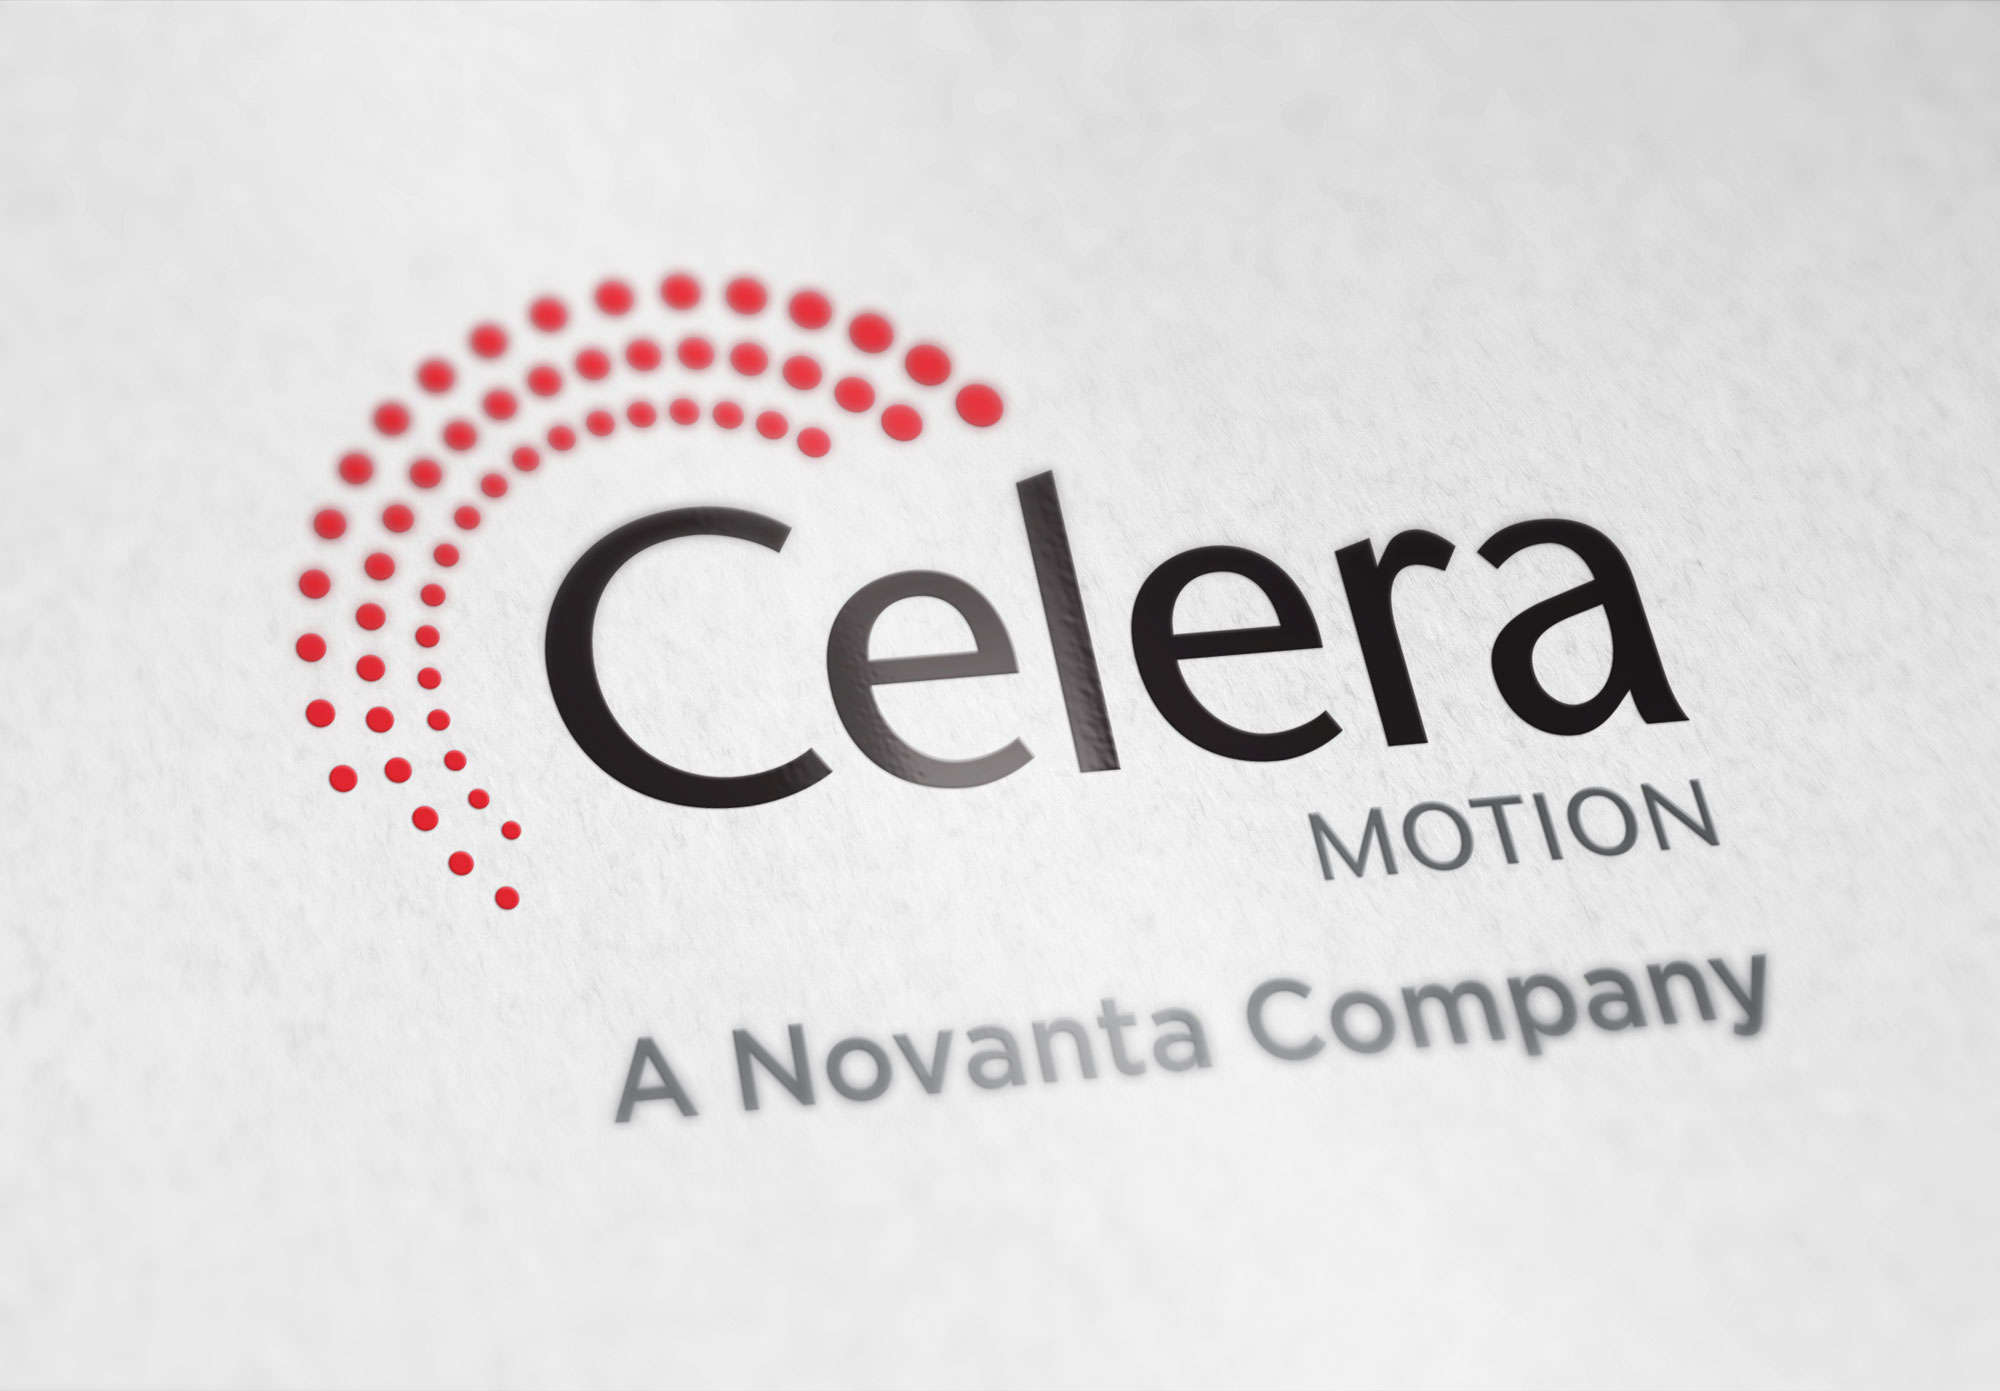 A new logo design blends together the MicroE Systems legacy brand with the new Celera Motion corporate identity.